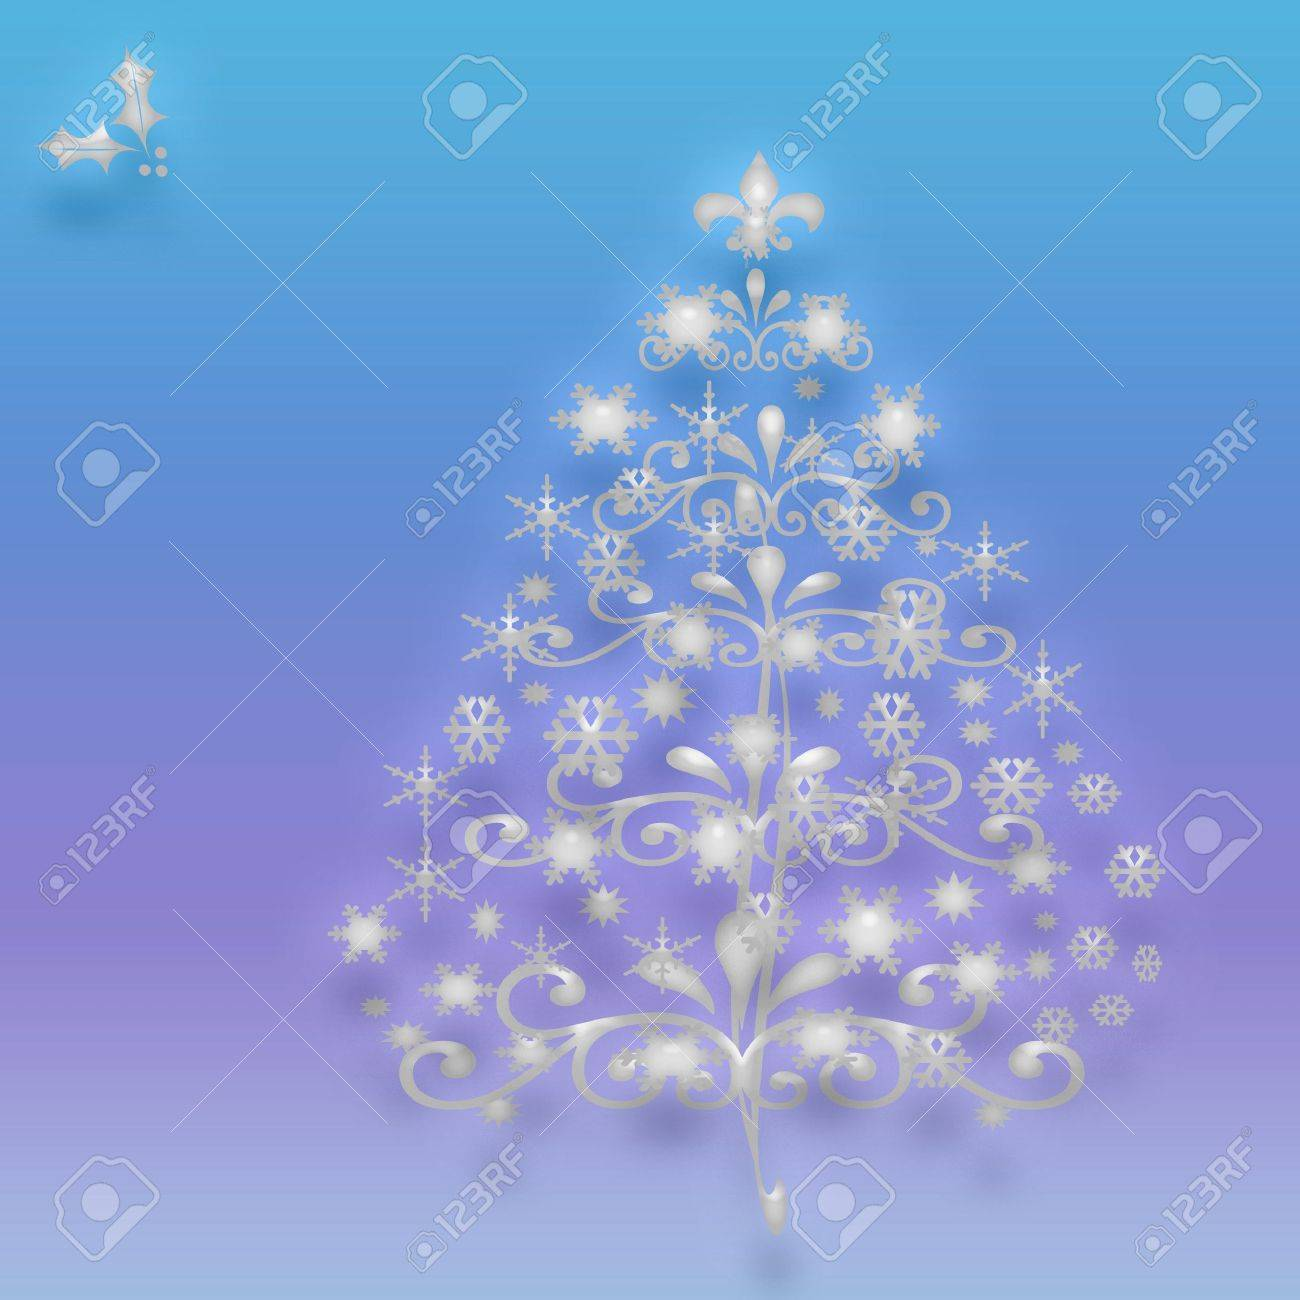 Crystal Christmas Ornaments.Crystal Christmas Tree With Ornaments On Gradient Background